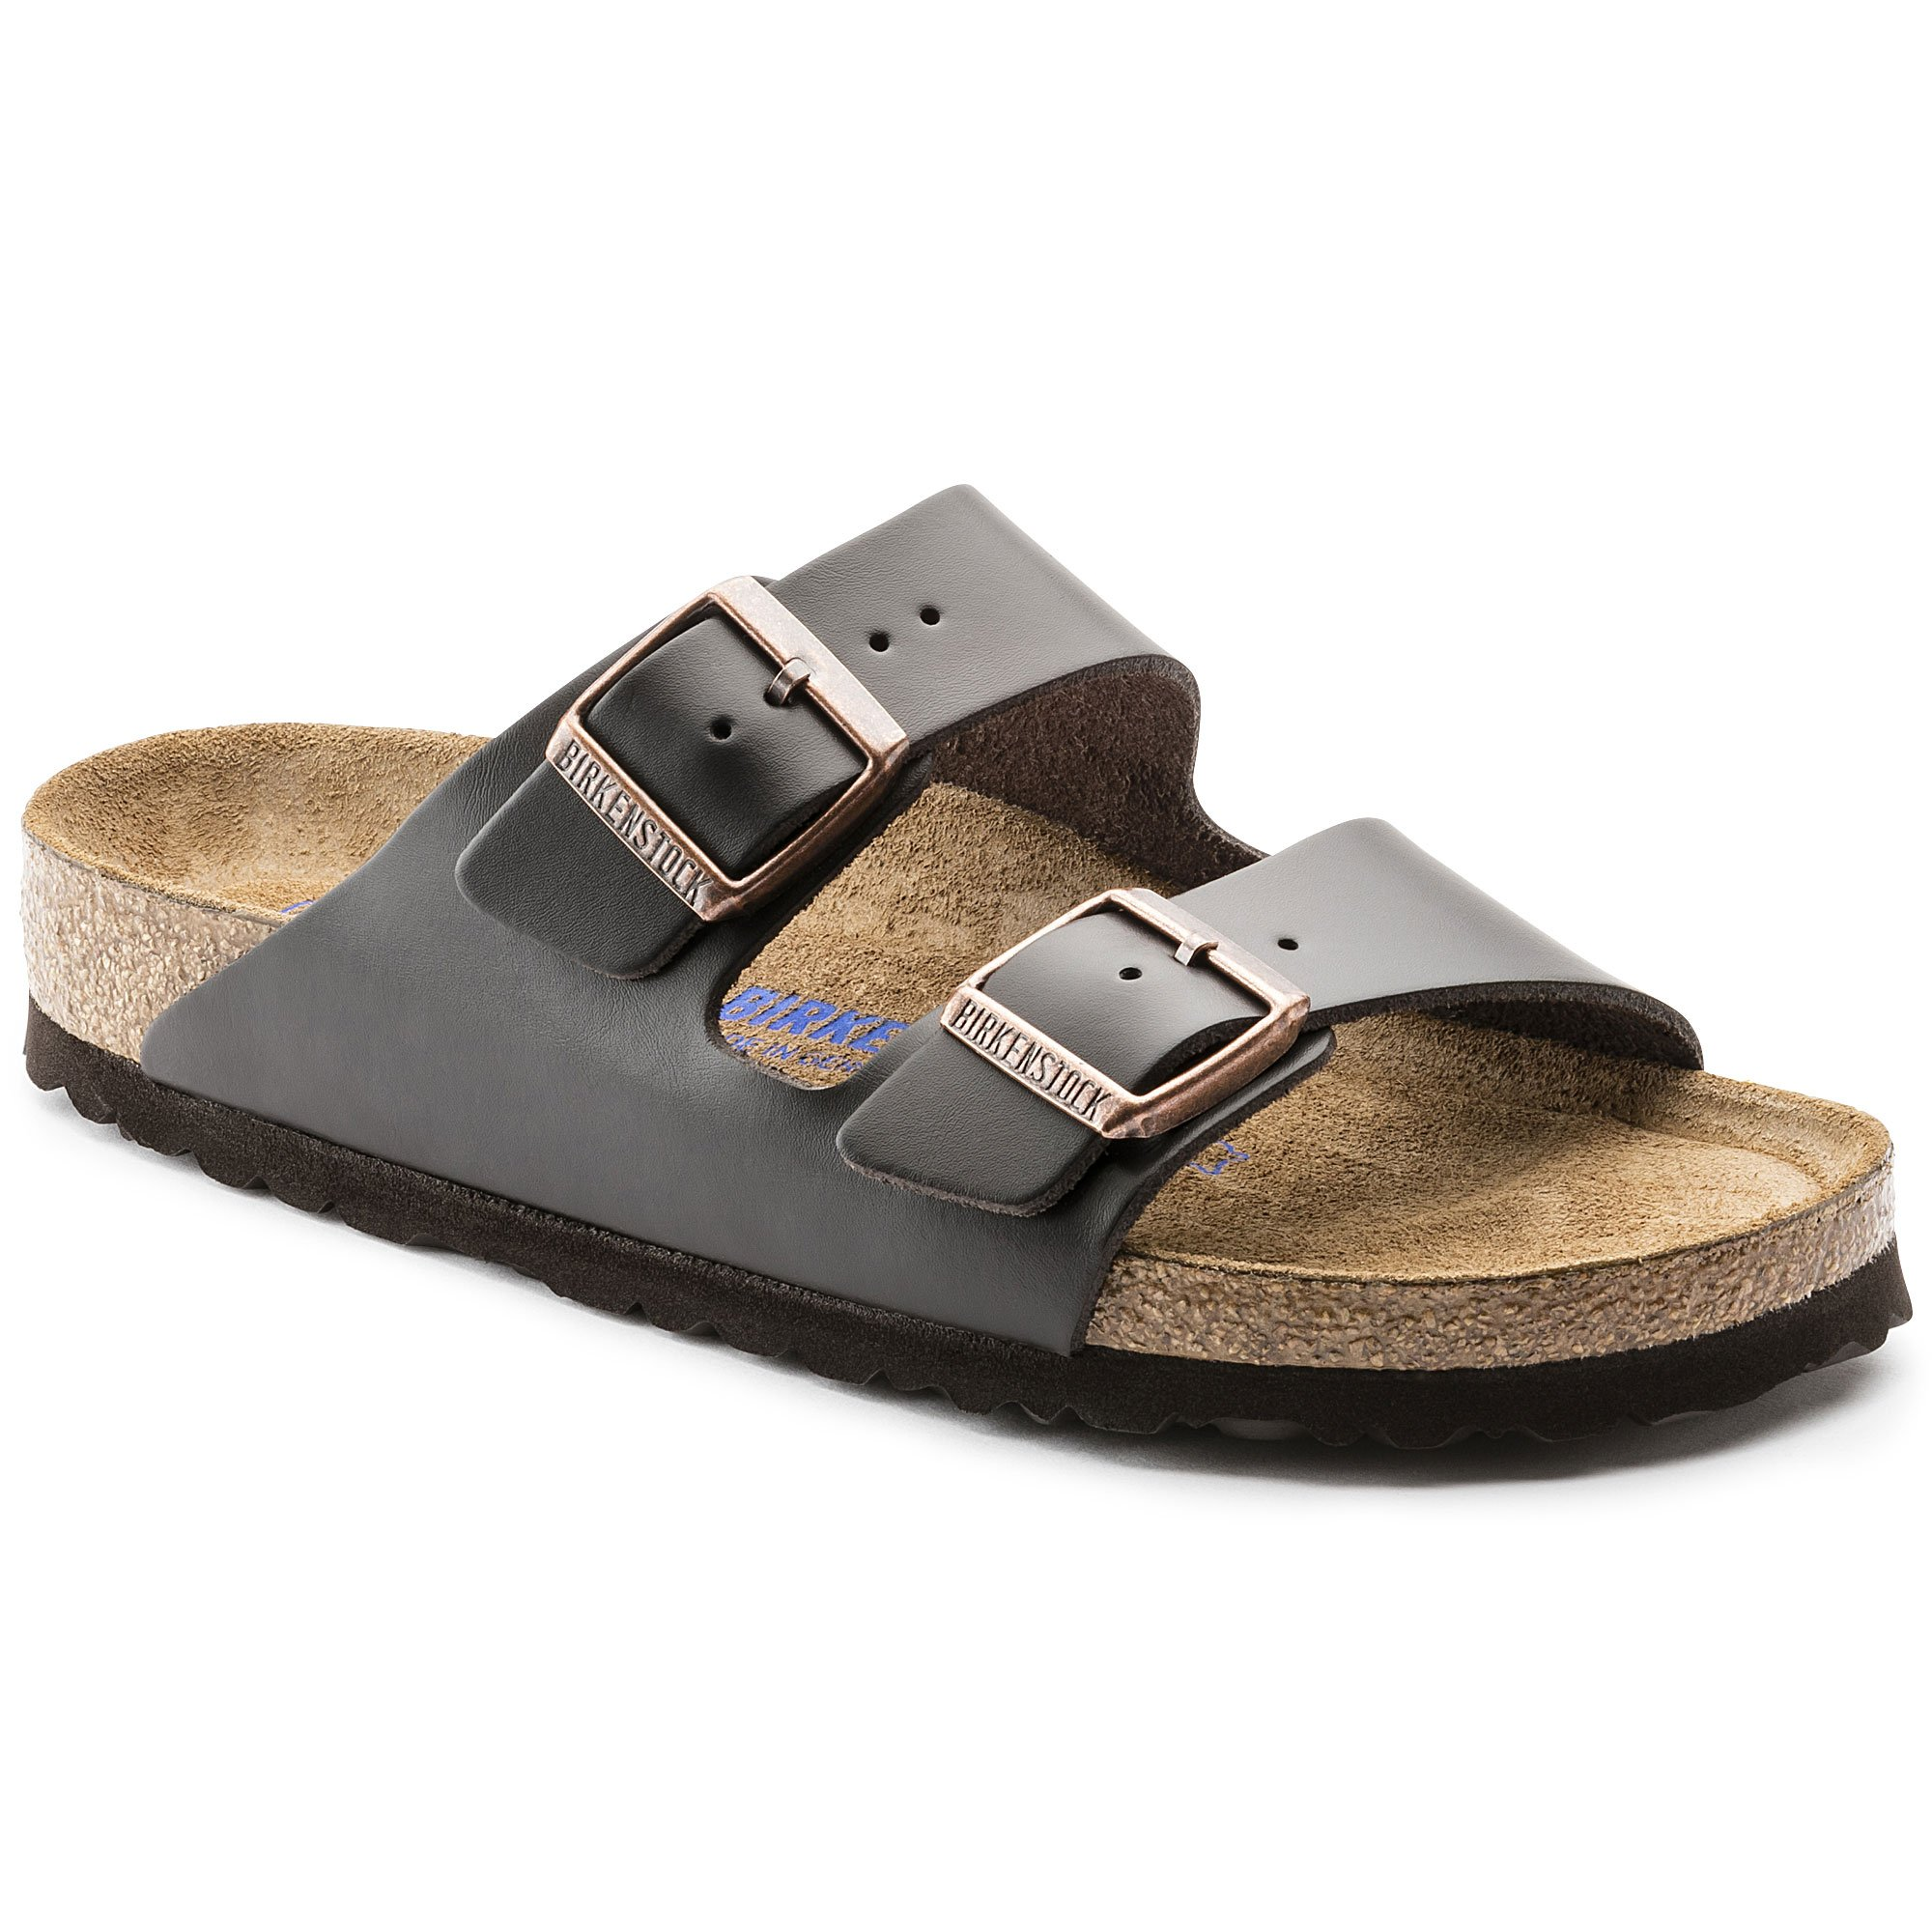 Birkenstock Men's Style Arizona Sandals, Shiny Brown